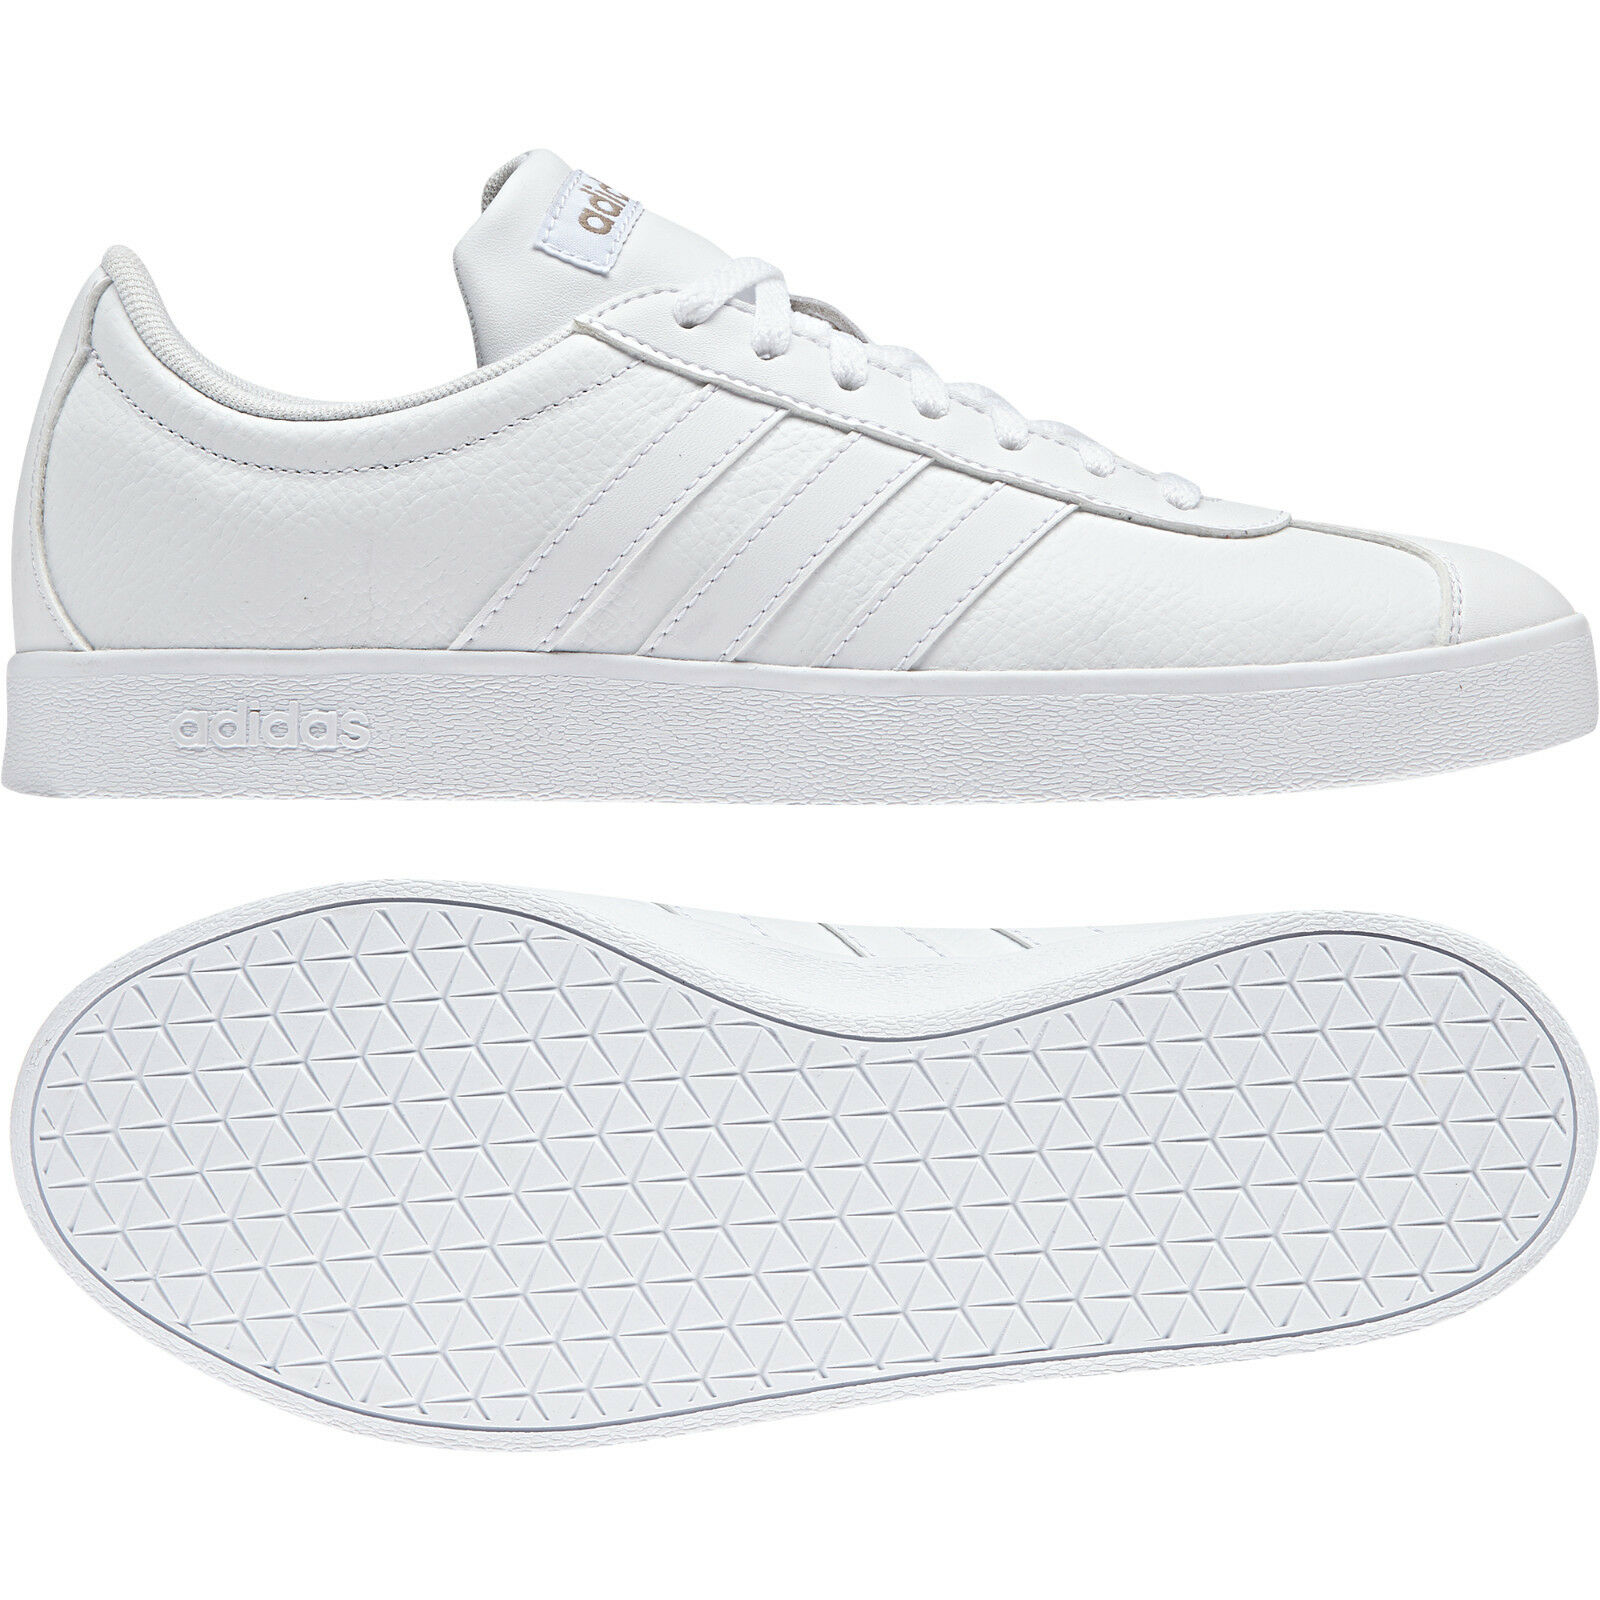 Adidas Women shoes Casual Sneakers Fashion Fashion Fashion VL Court Trainers Running B42314 New 8bdd12